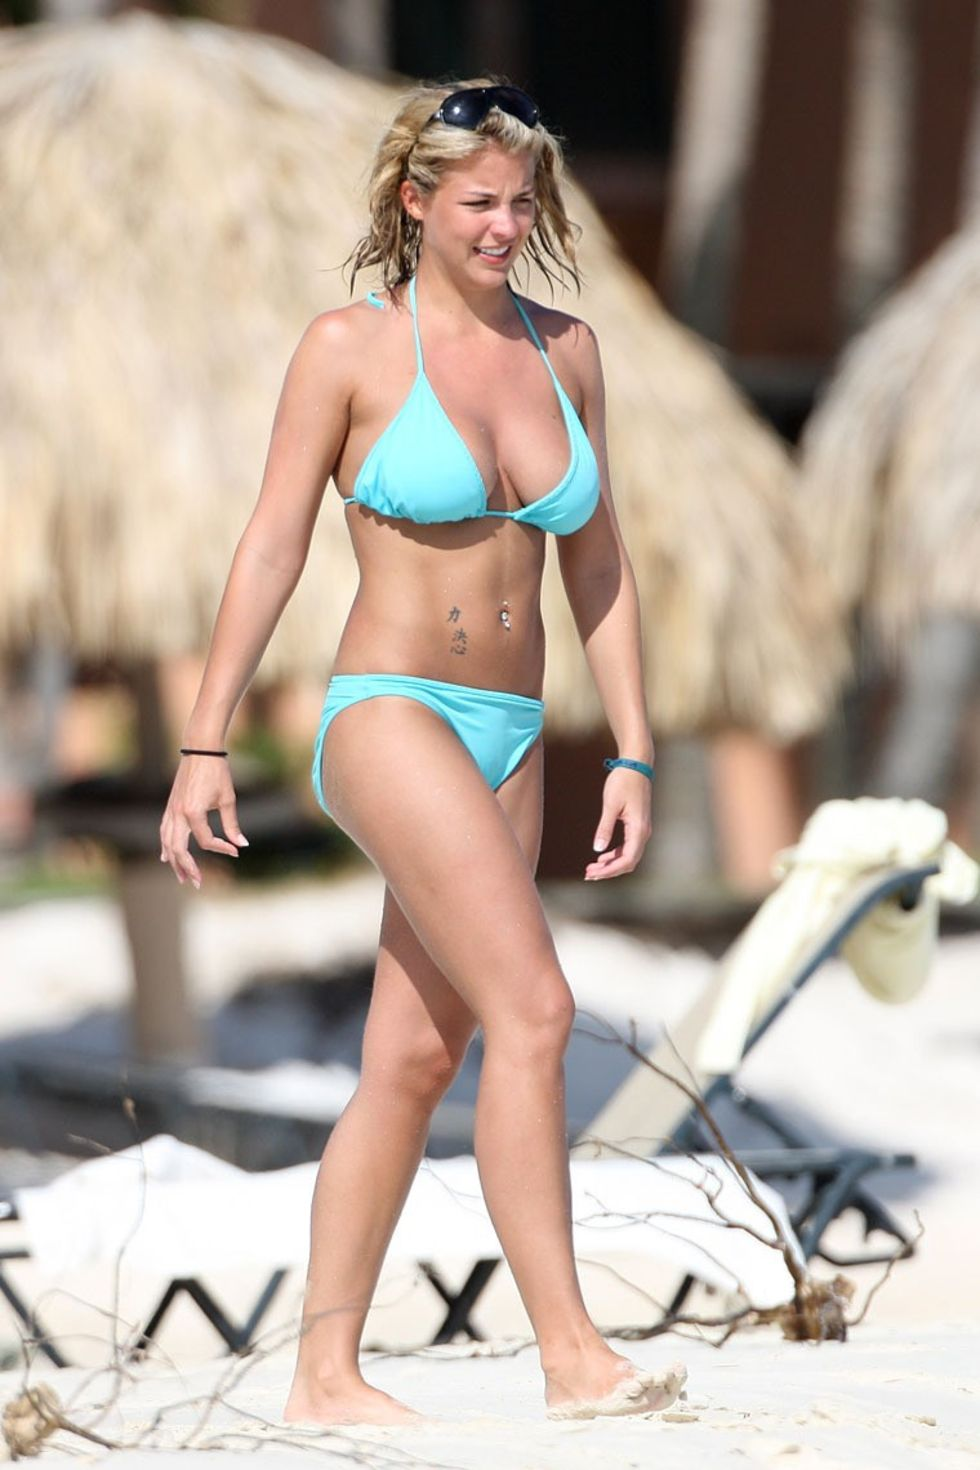 gemma-atkinson-bikini-candids-at-the-beach-in-caribbean-01